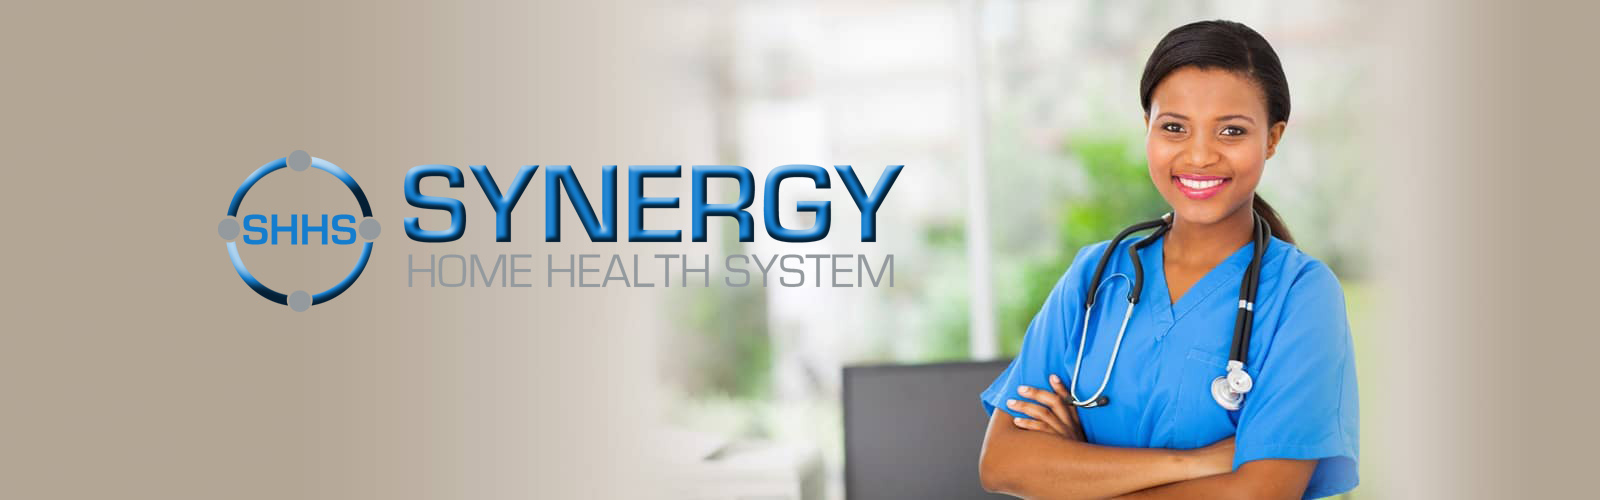 SYNERGY HOME HEALTH SYSTEM image 0